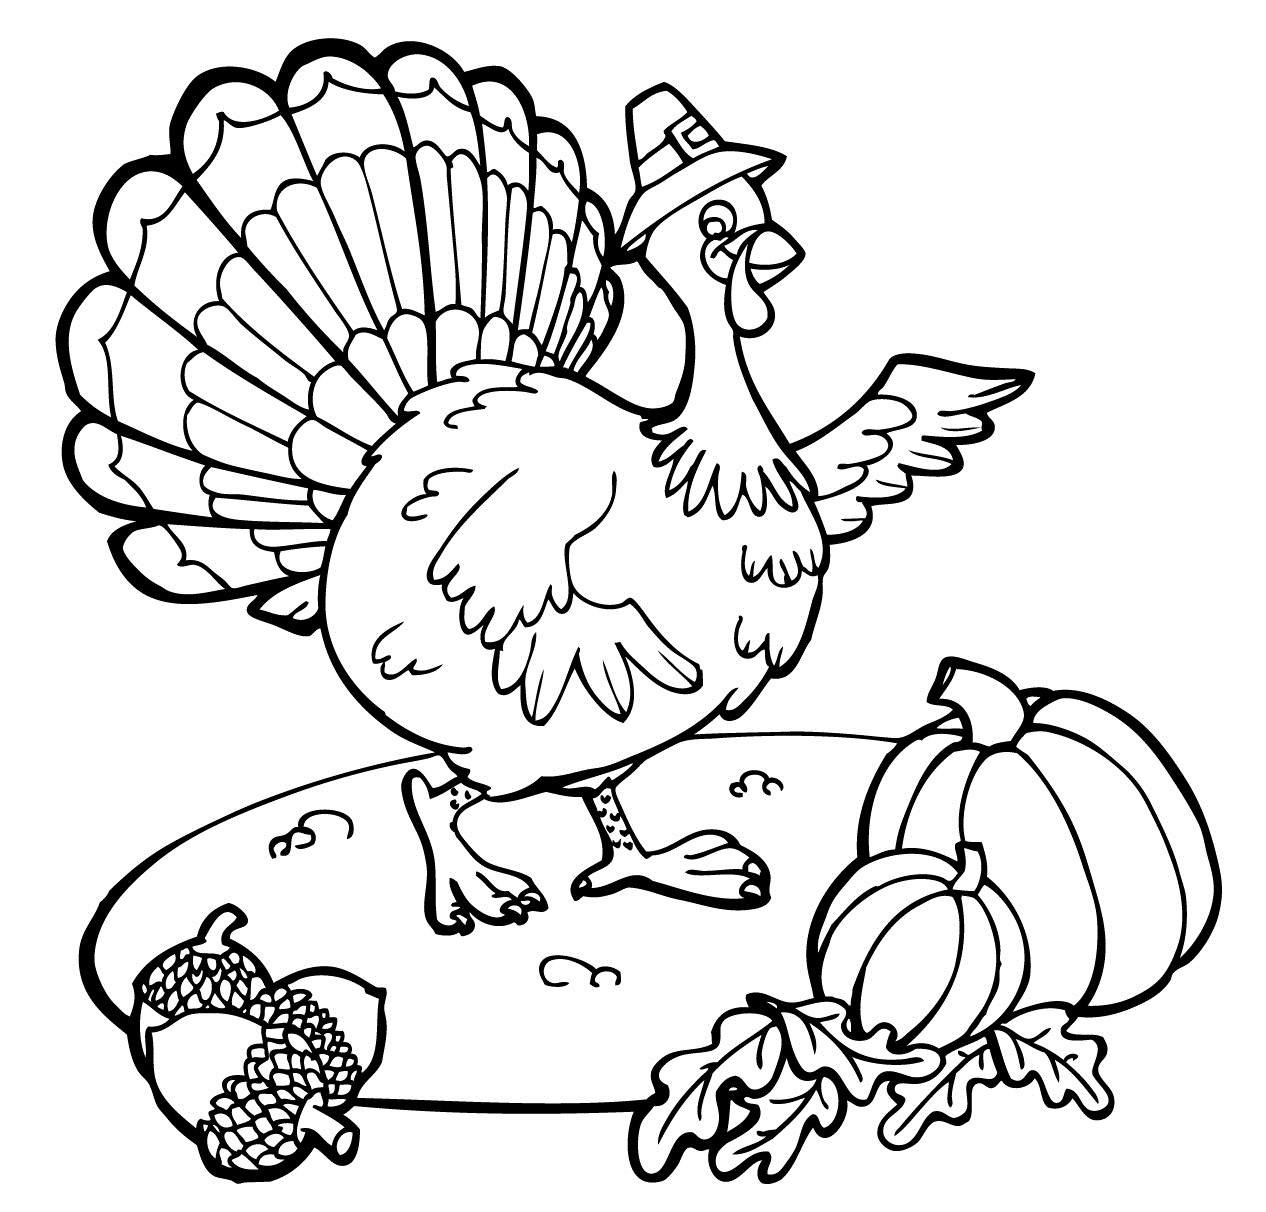 free printable thanksgiving coloring pages for kids - Thanksgiving Coloring Worksheets